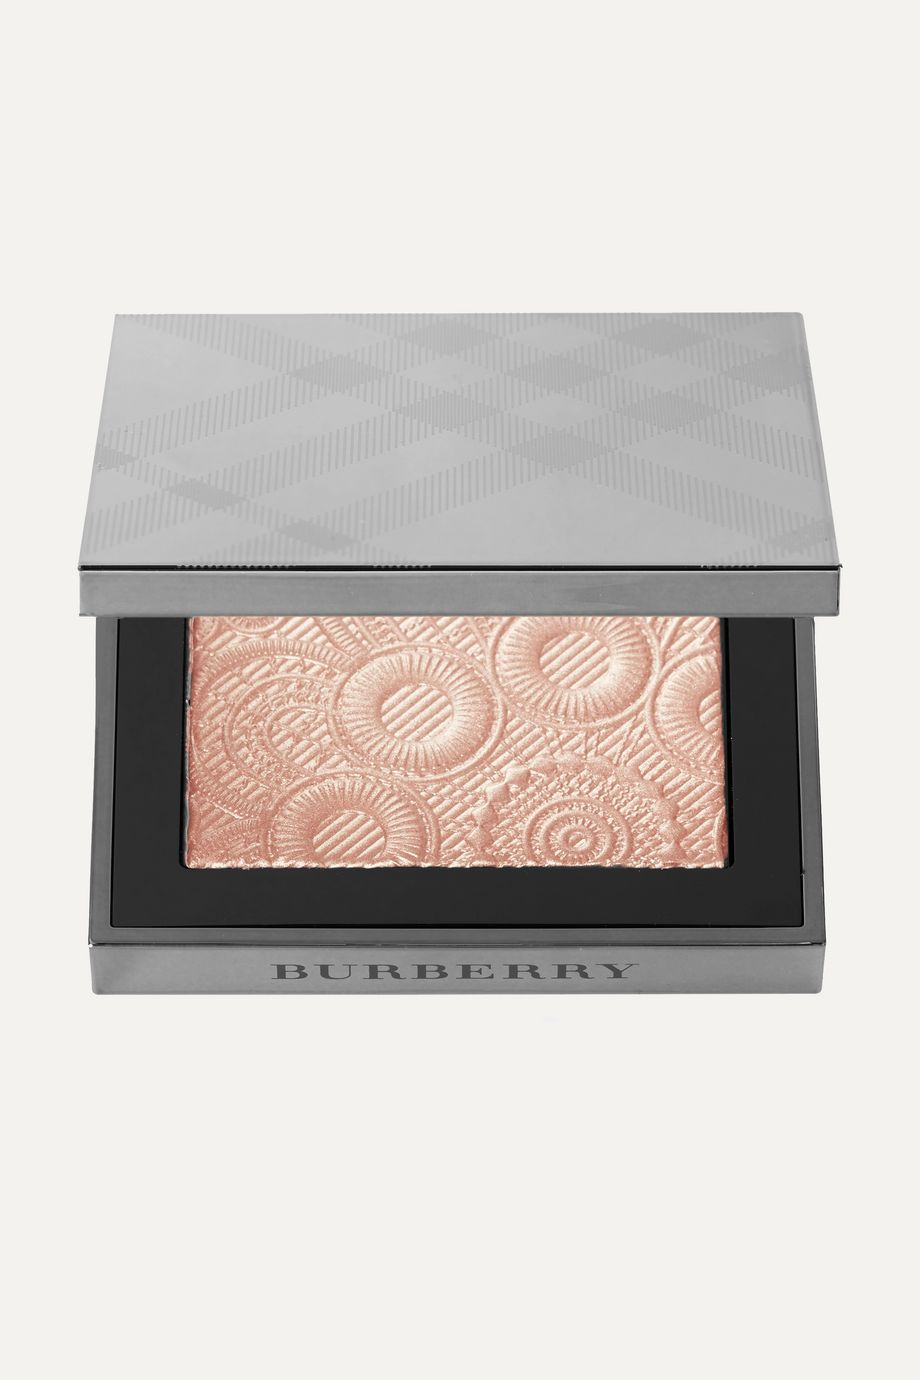 Burberry Beauty Fresh Glow Highlighter - Rose Gold No.04